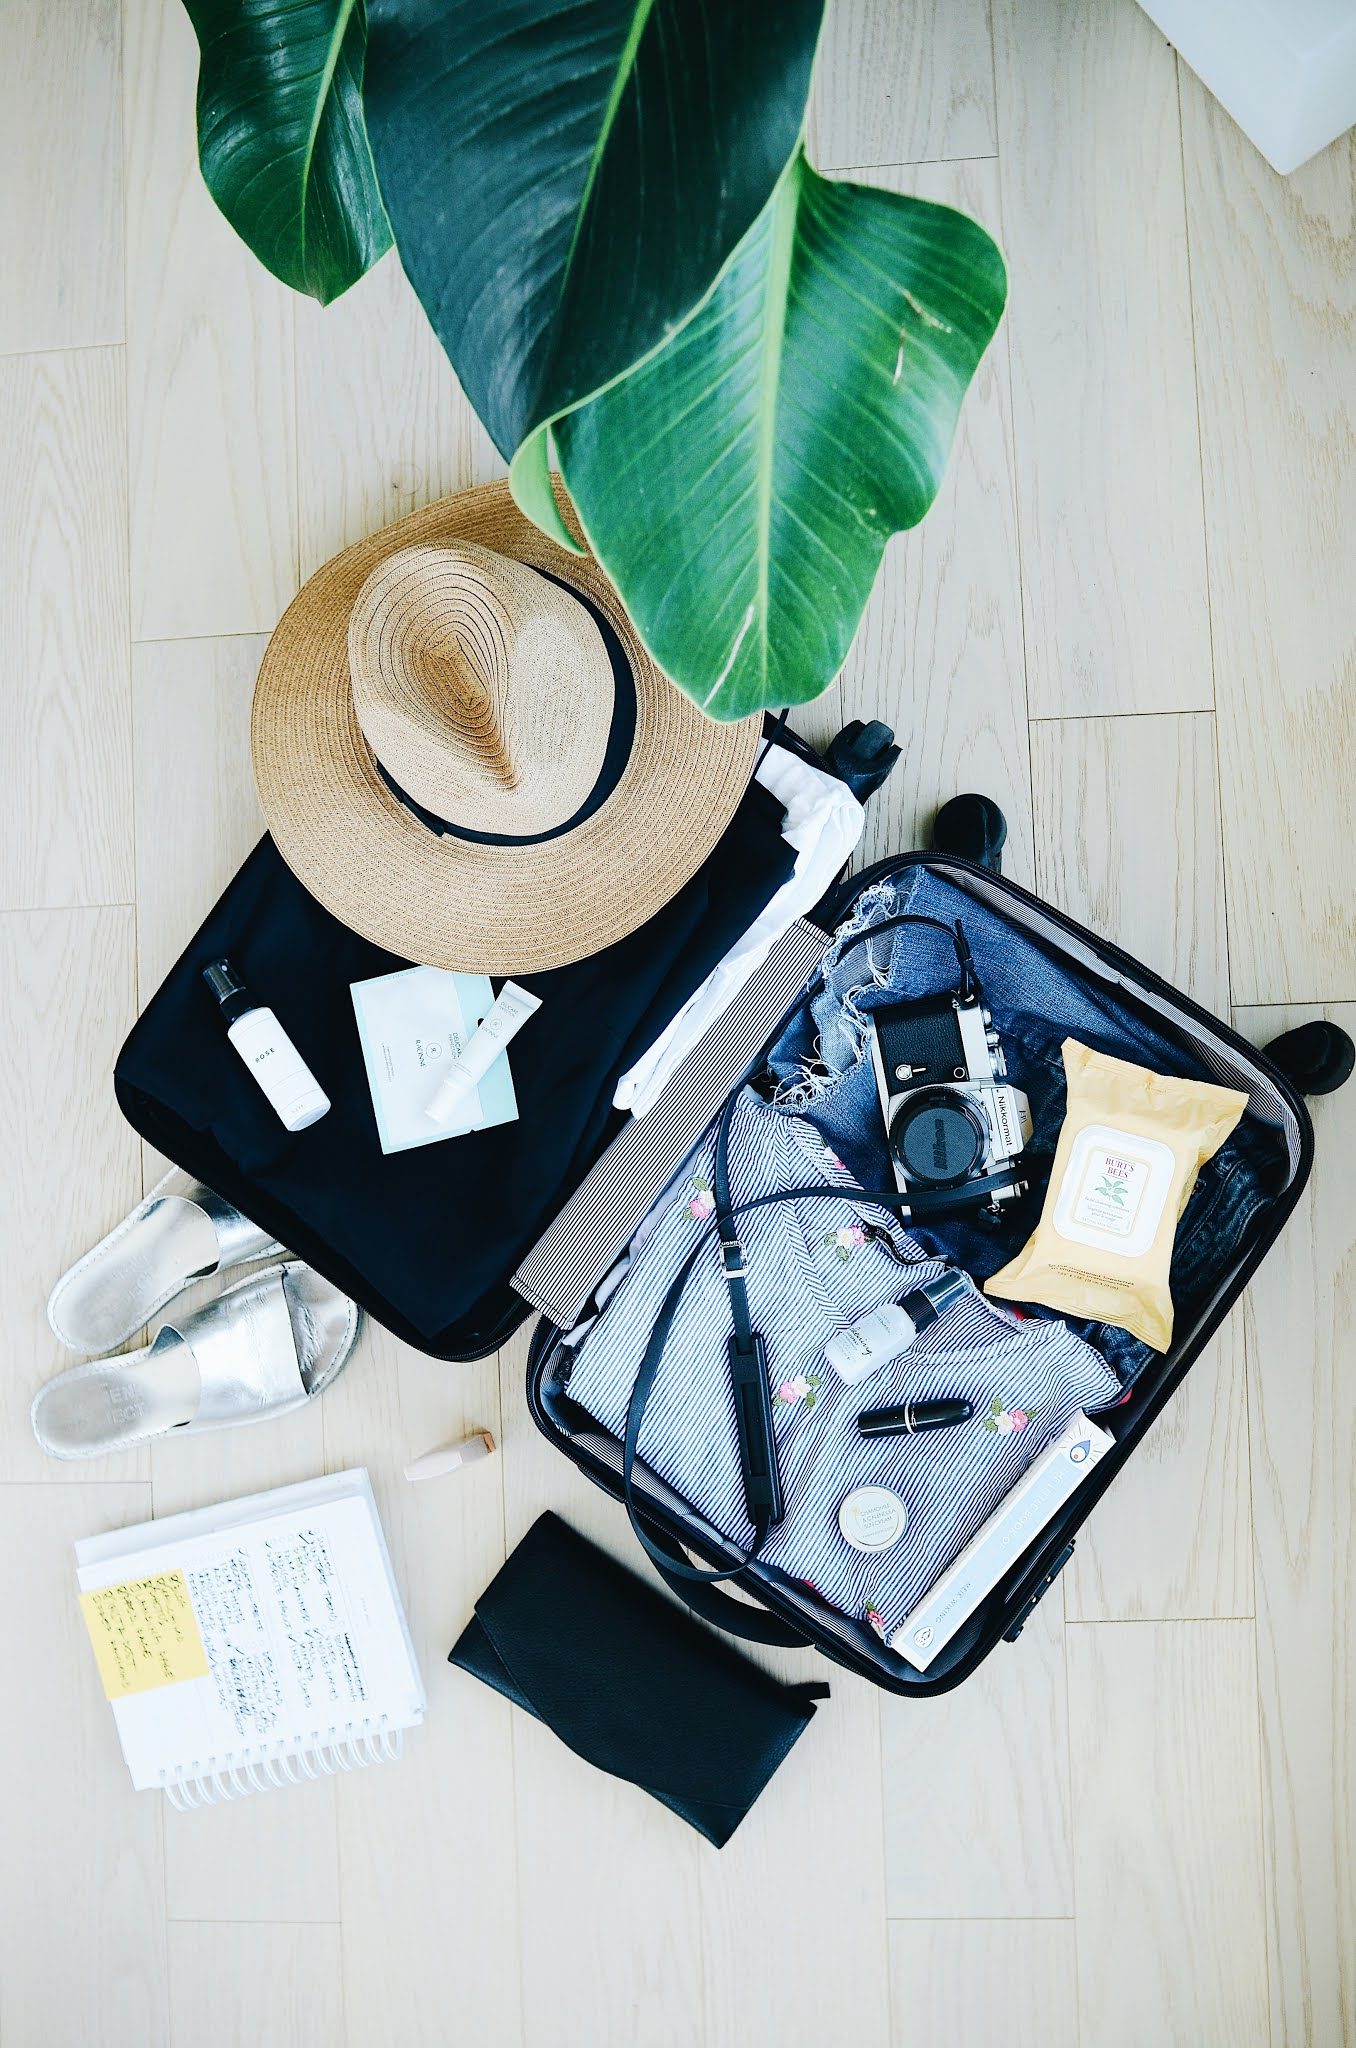 www.syazaaraihanah.com : How To Travel Without Worries